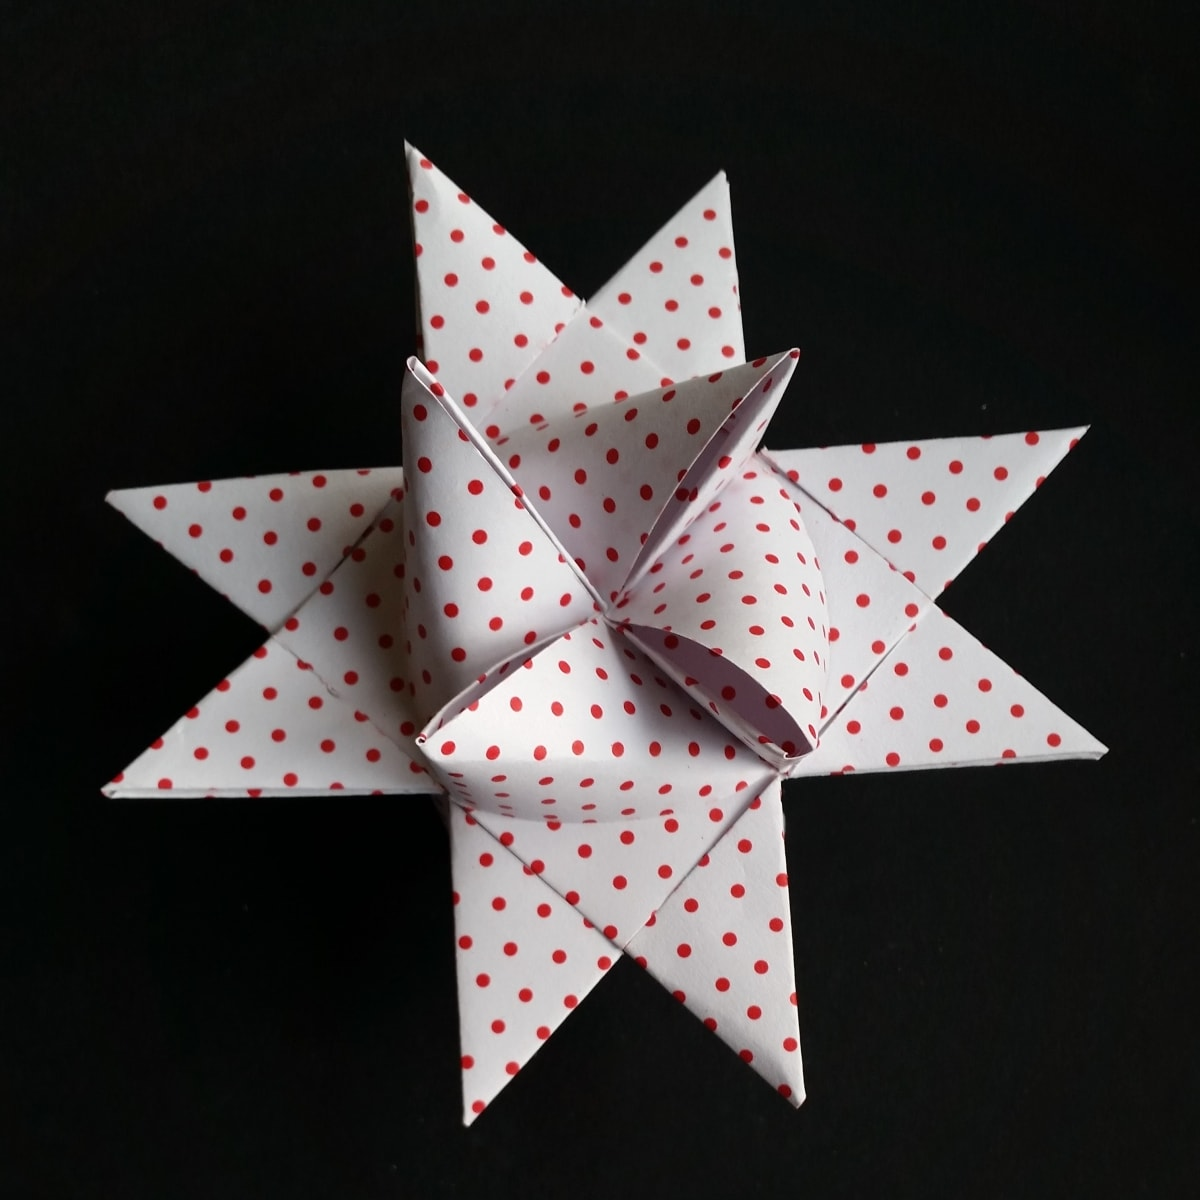 Make a Froebel star - a classic Danish Christmas decoration. If you are a beginner, check out Danish Things @ danishthings.com. You'll find Froebel star instructions, a step by step guide with text, photos and video.. Flet en julestjerne - trin for trin. Er du nybegynder, så se med. Om du folder eller fletter julestjerner - får du hjælp til alle trin. Gennemgang med tekst, fotos og video. Find opskrifter, trin for trin guides, gratis print selv og inspiration til årets gang på danishthings.com